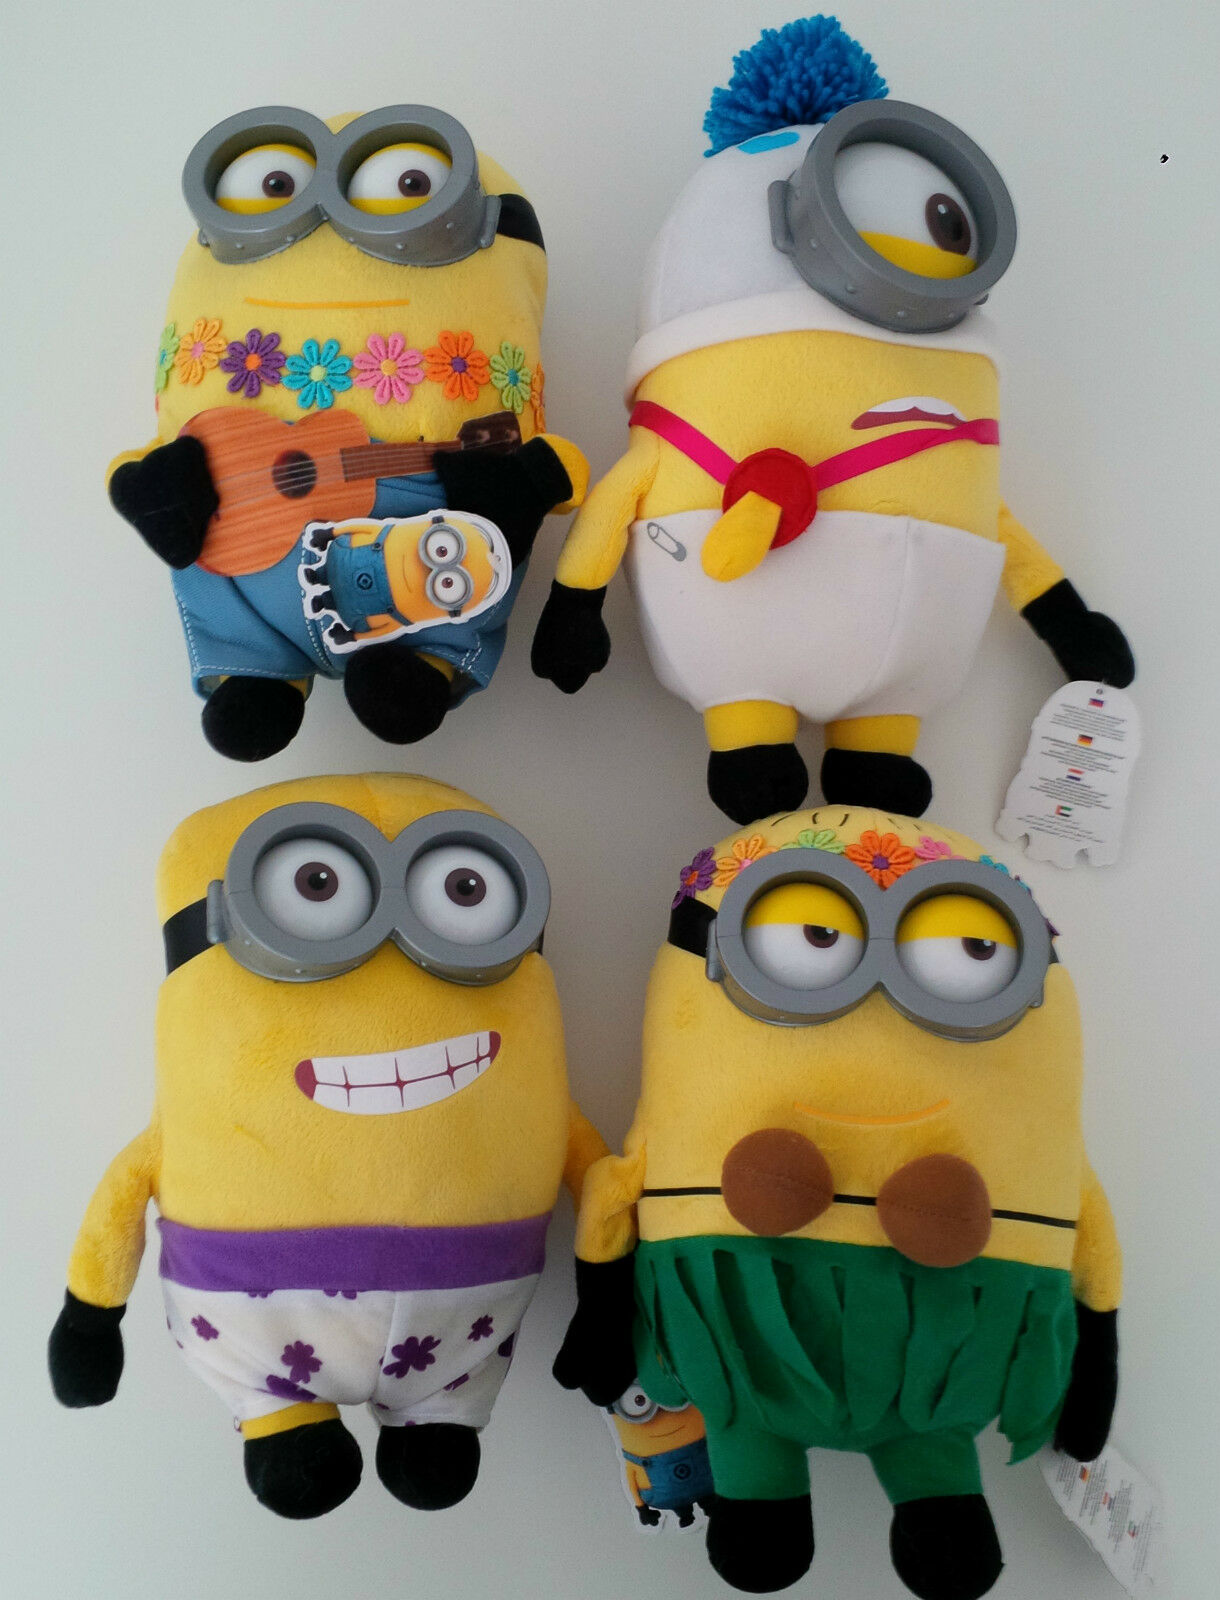 Soft toy Minion 3D HAWAII Original 2015 Eyes + Glasses Real MINIONS 2015 FILM